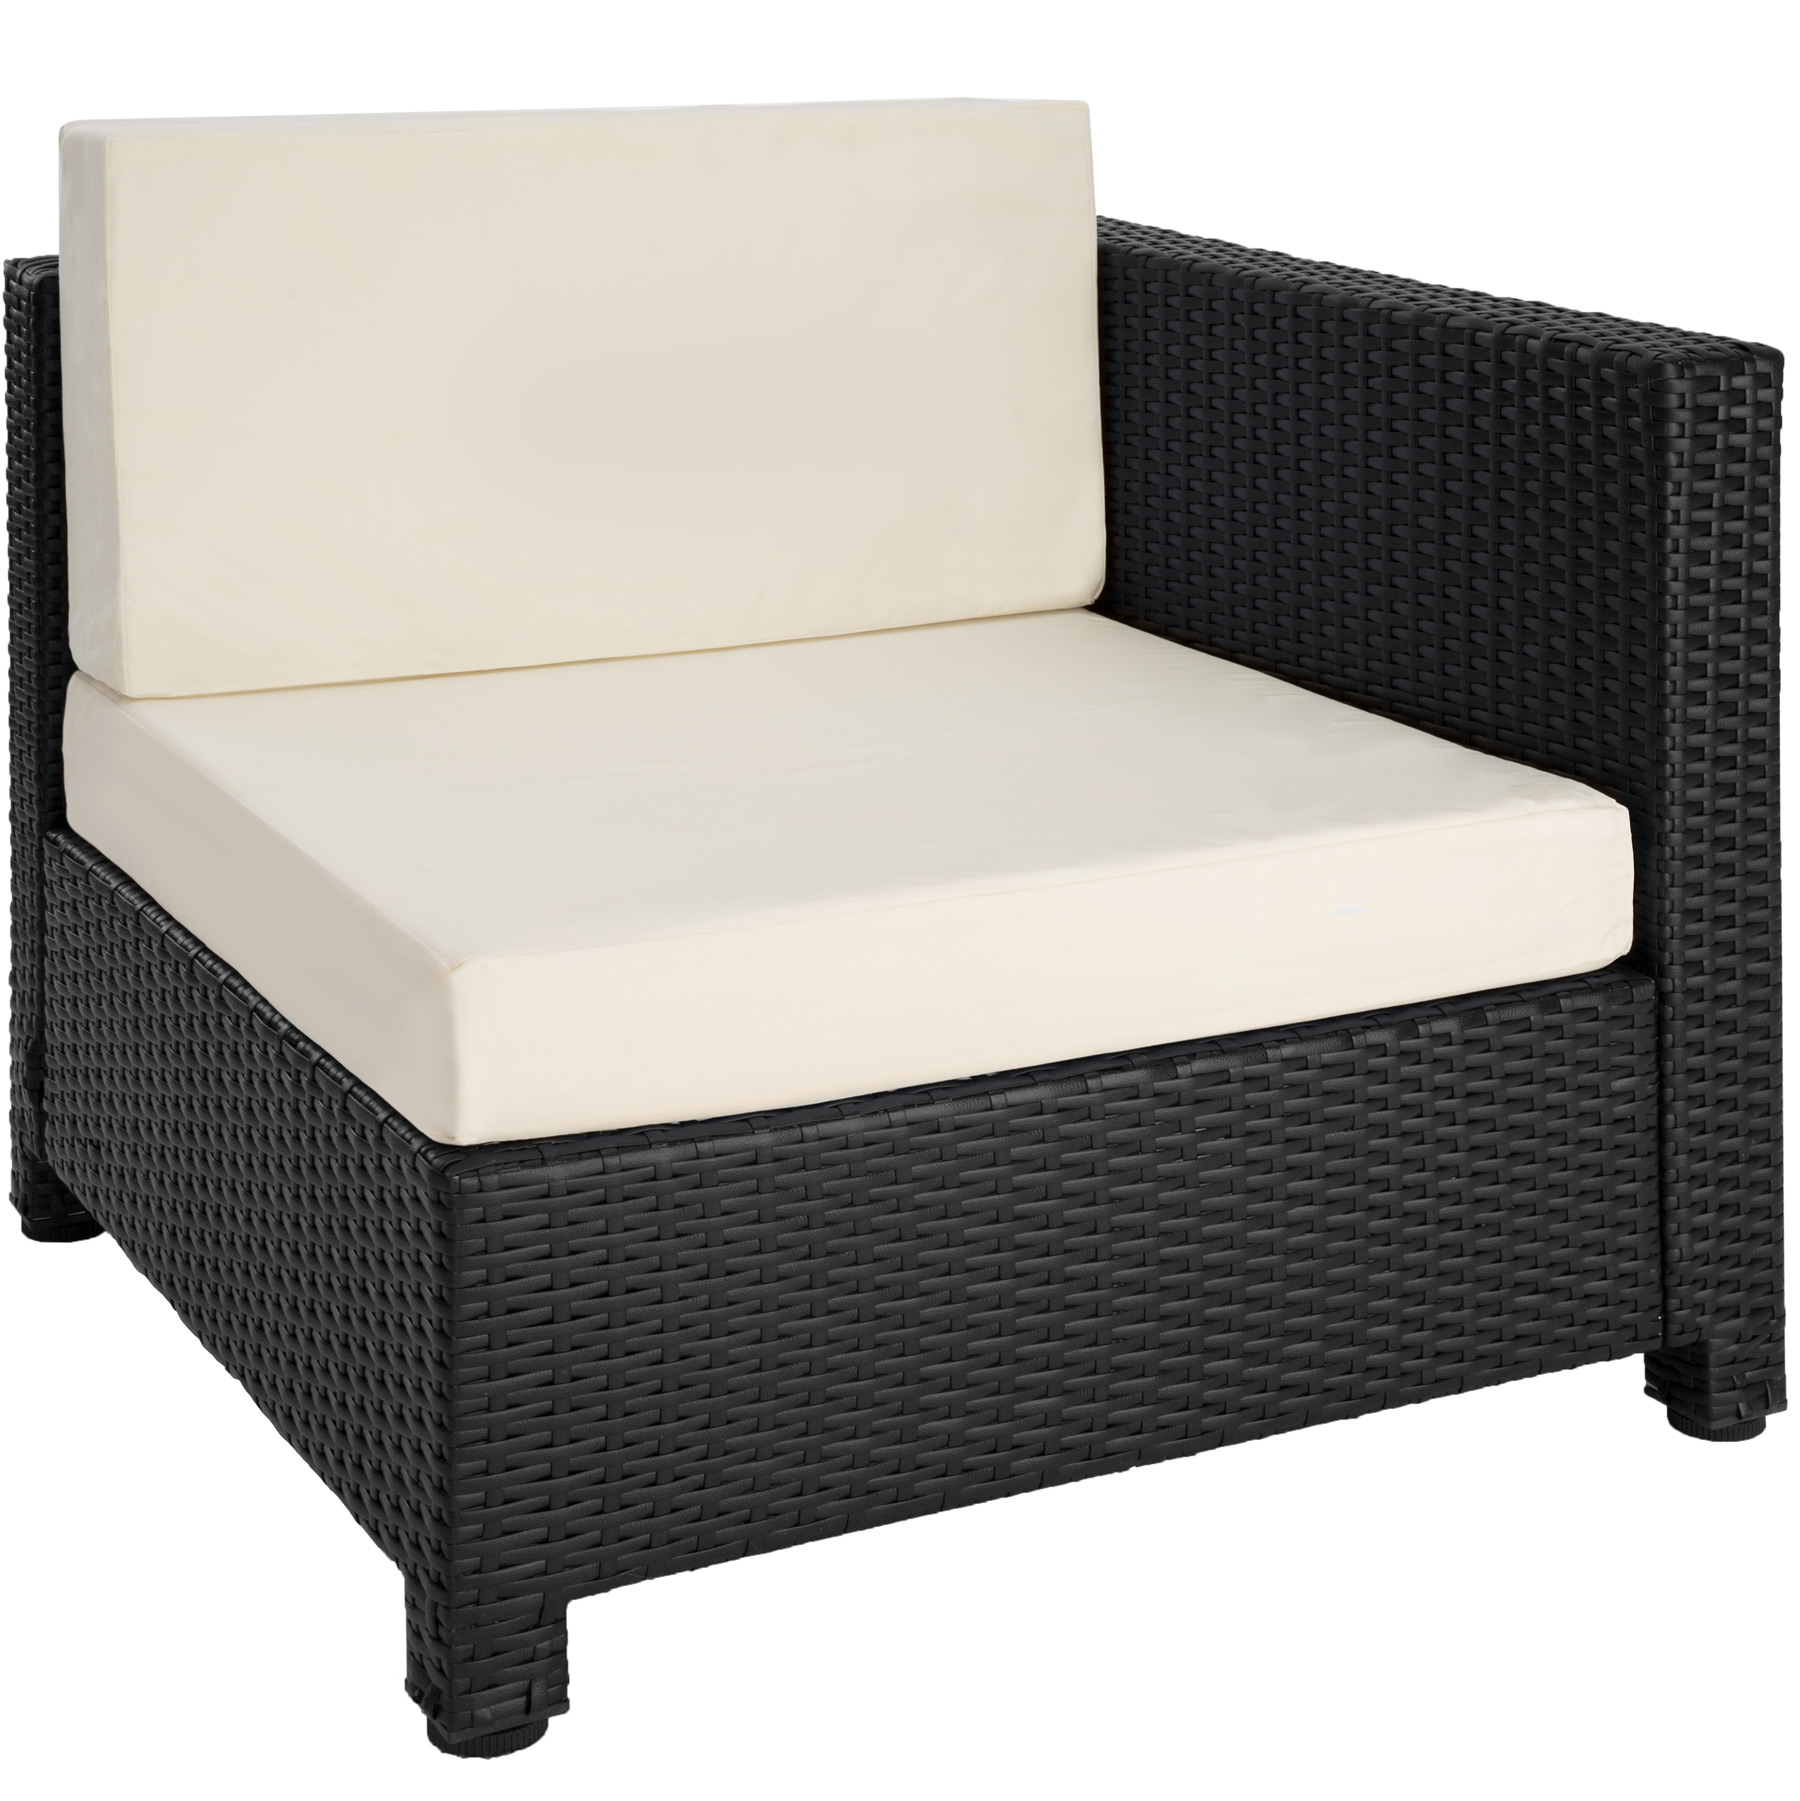 Salon de jardin canap fauteuil table basse pouf r sine for Table basse resine tressee